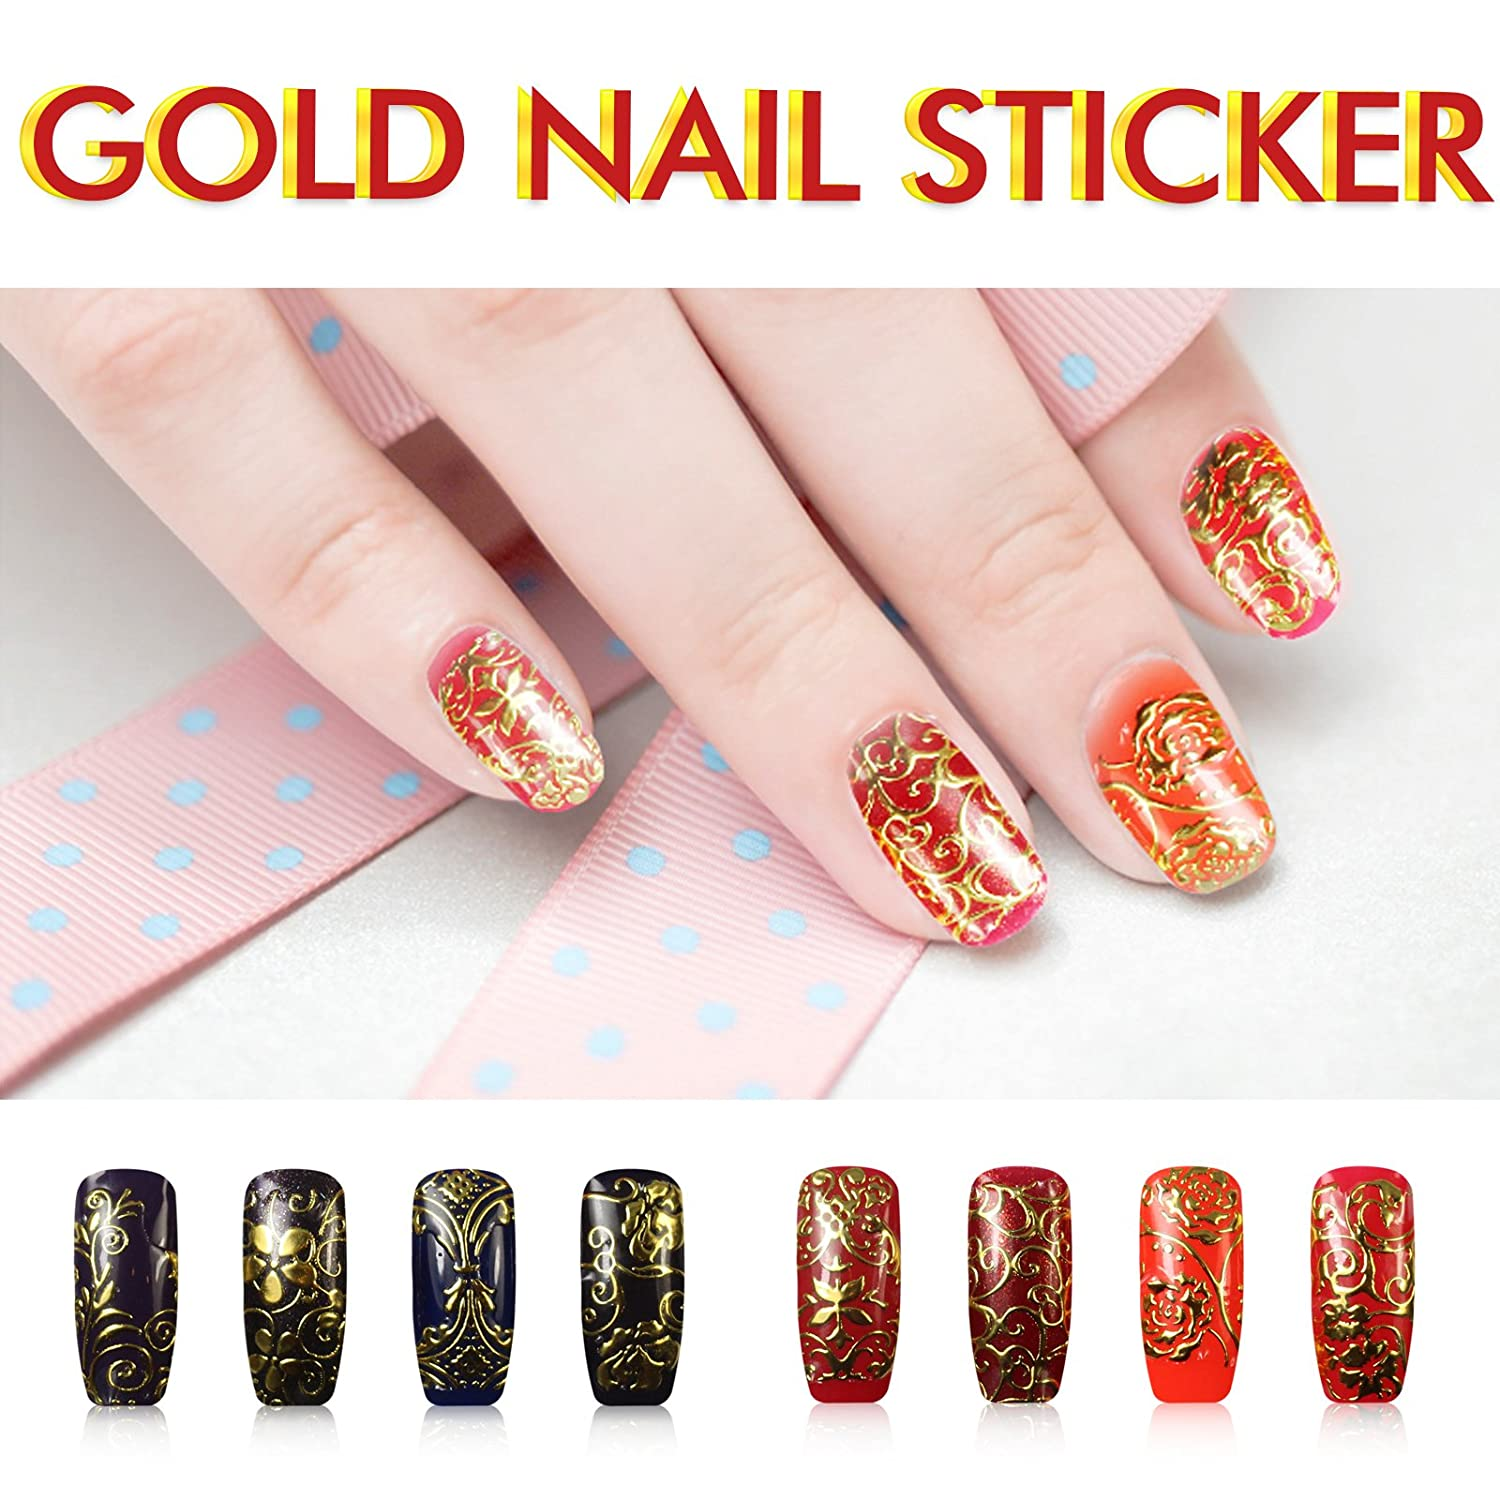 Amazon.com: Gold Nail Nail Art Stickers/Nail Decals /Nail Tattoo ...